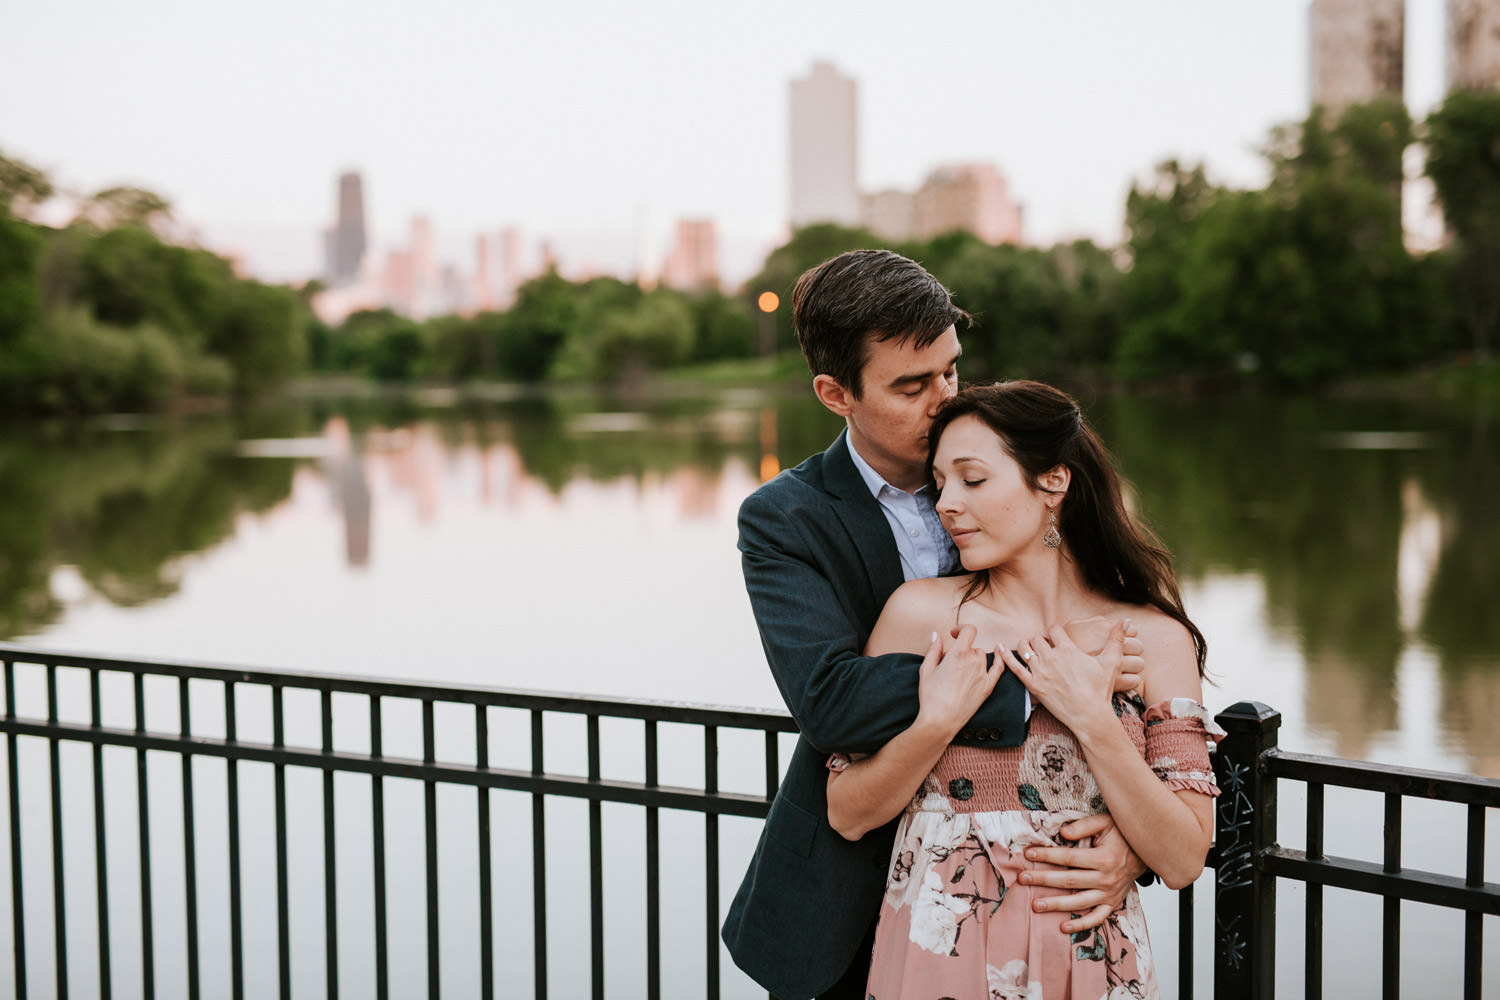 Portrait of the future bride and groom taken by North Pond in Lincoln Park during sunset.